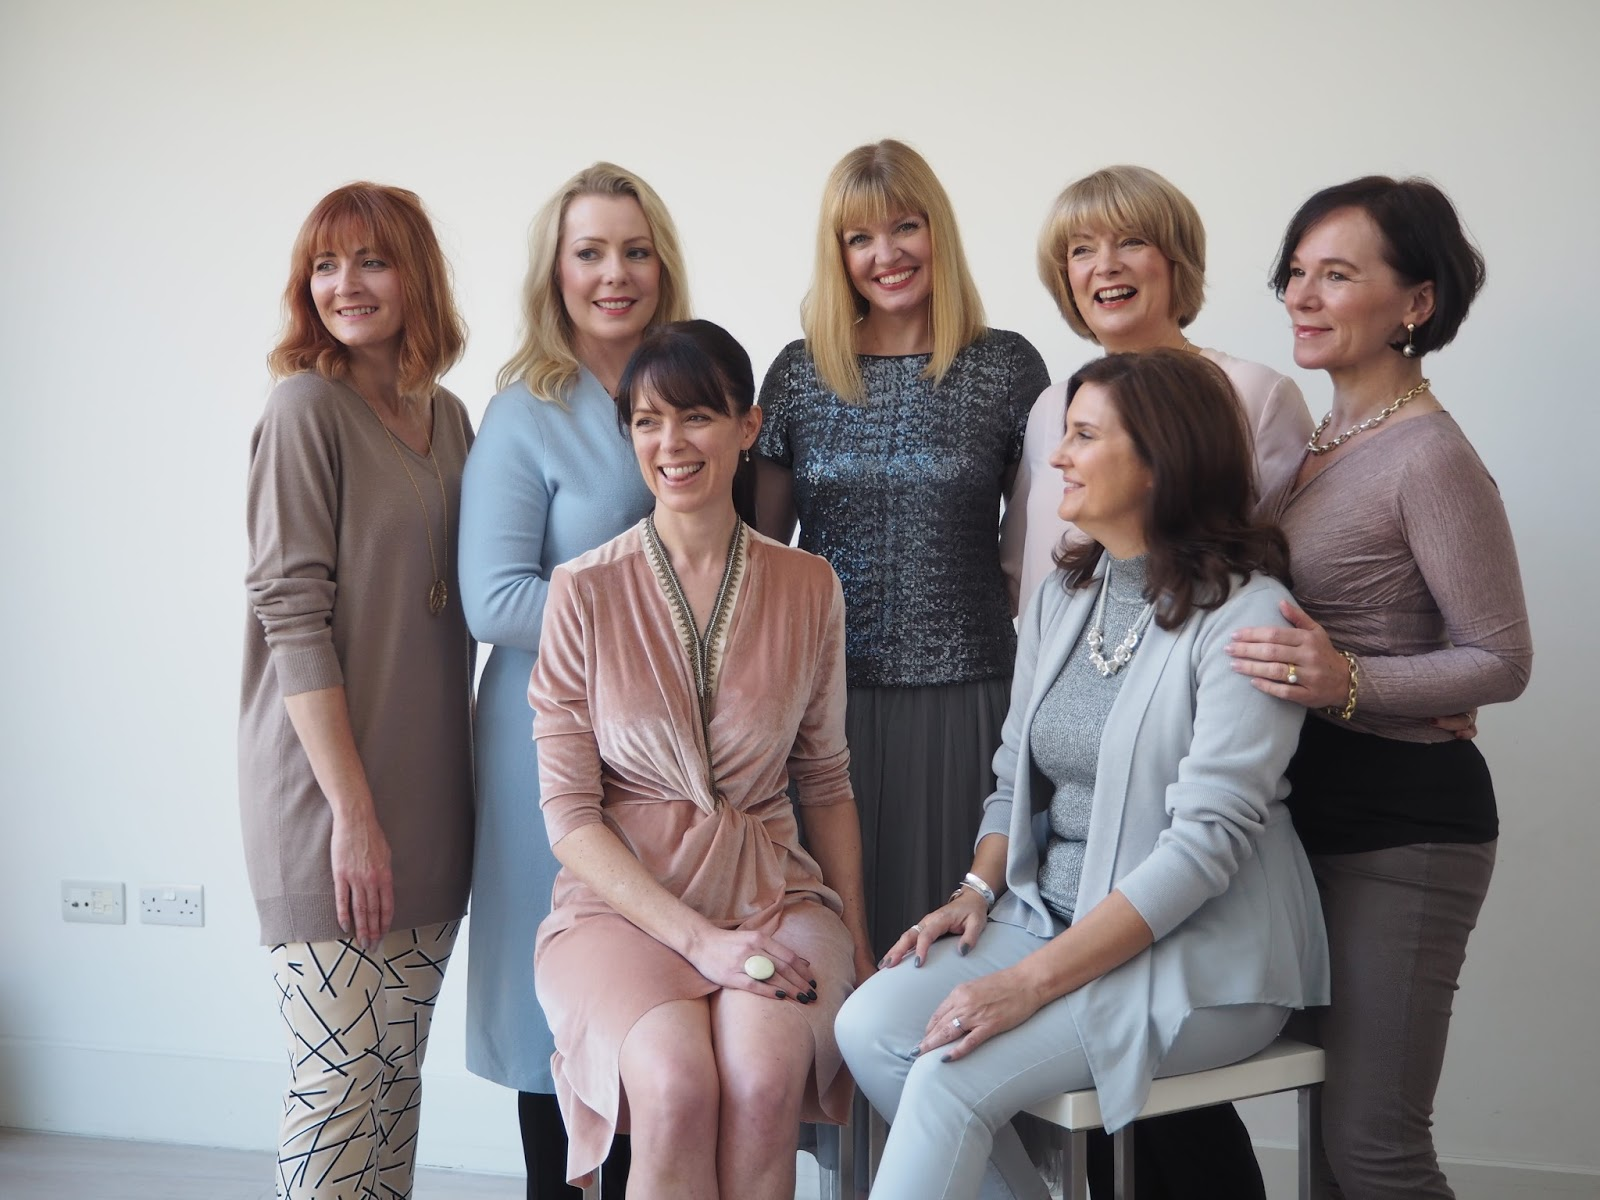 Behind the scenes at The Over 40 Collective bloggers photoshoot in London